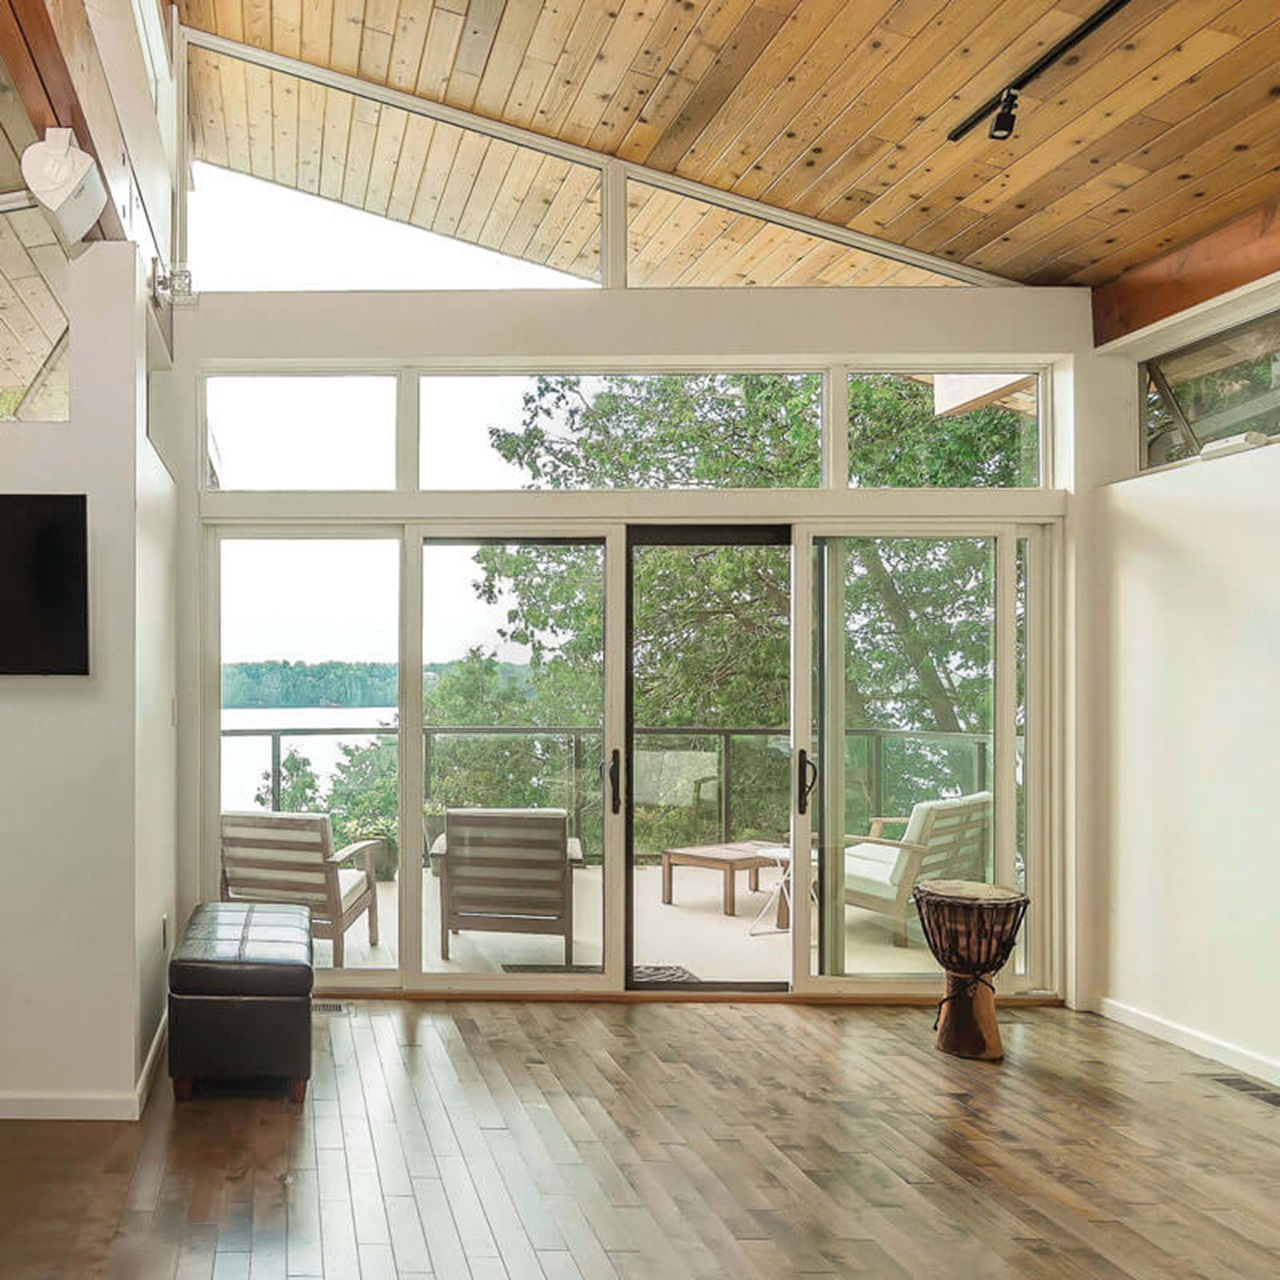 Bring the Outdoors Inside with Marvin Patio Doors!